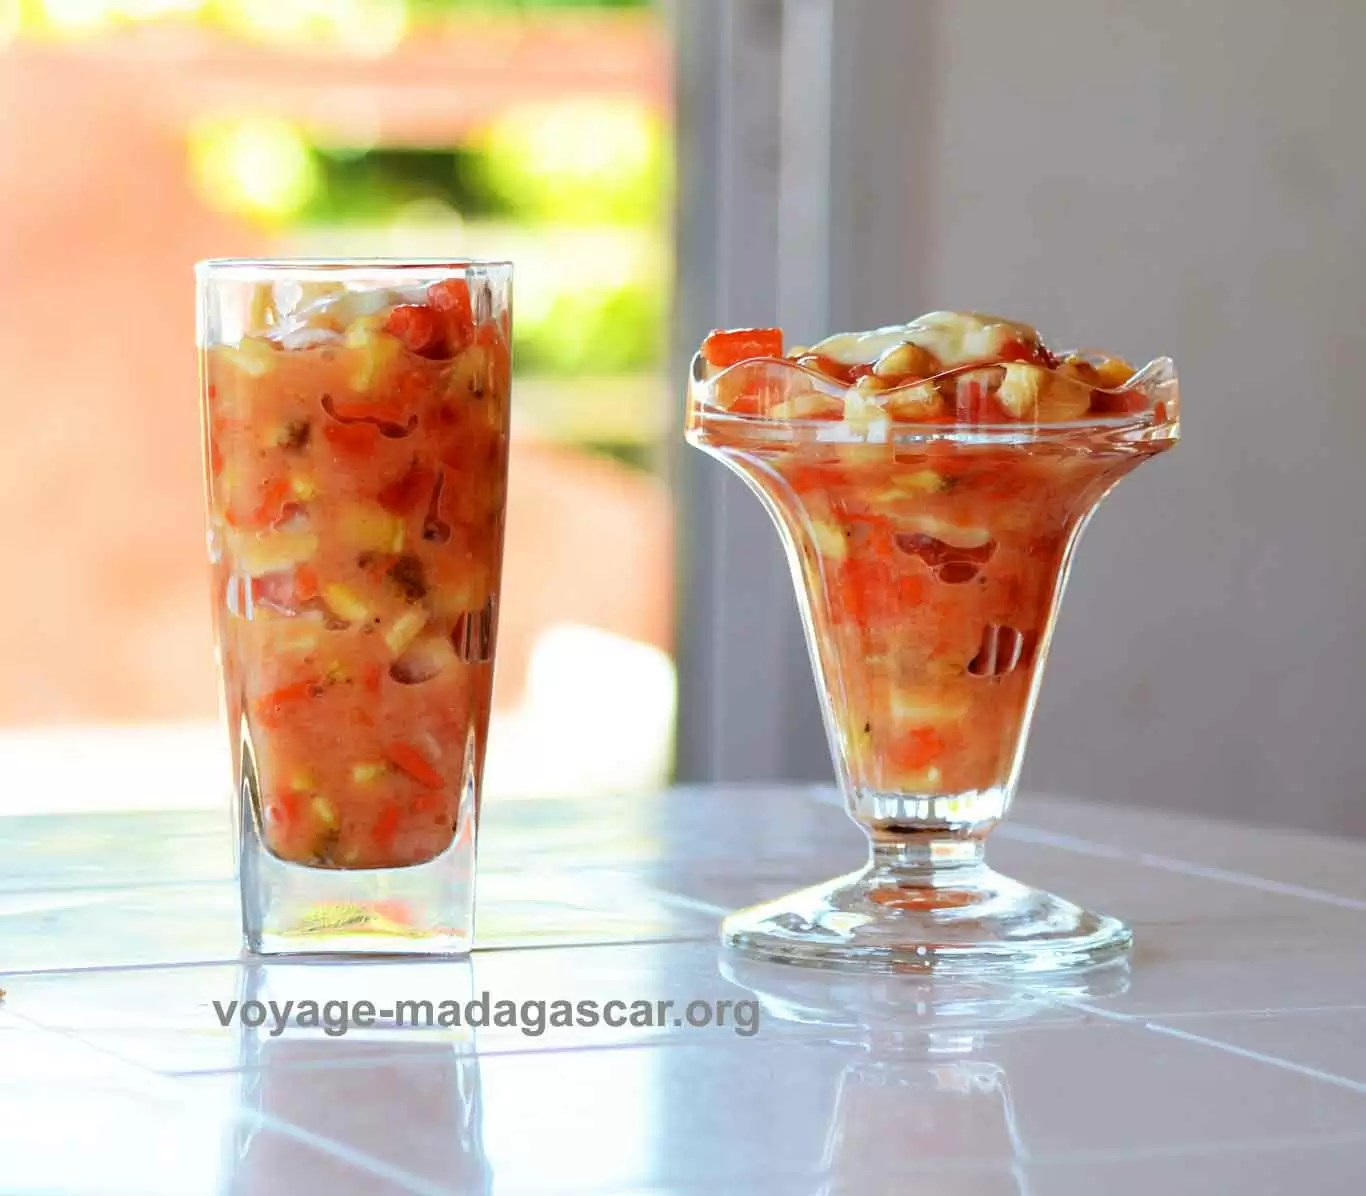 Salade de fruits tropicaux